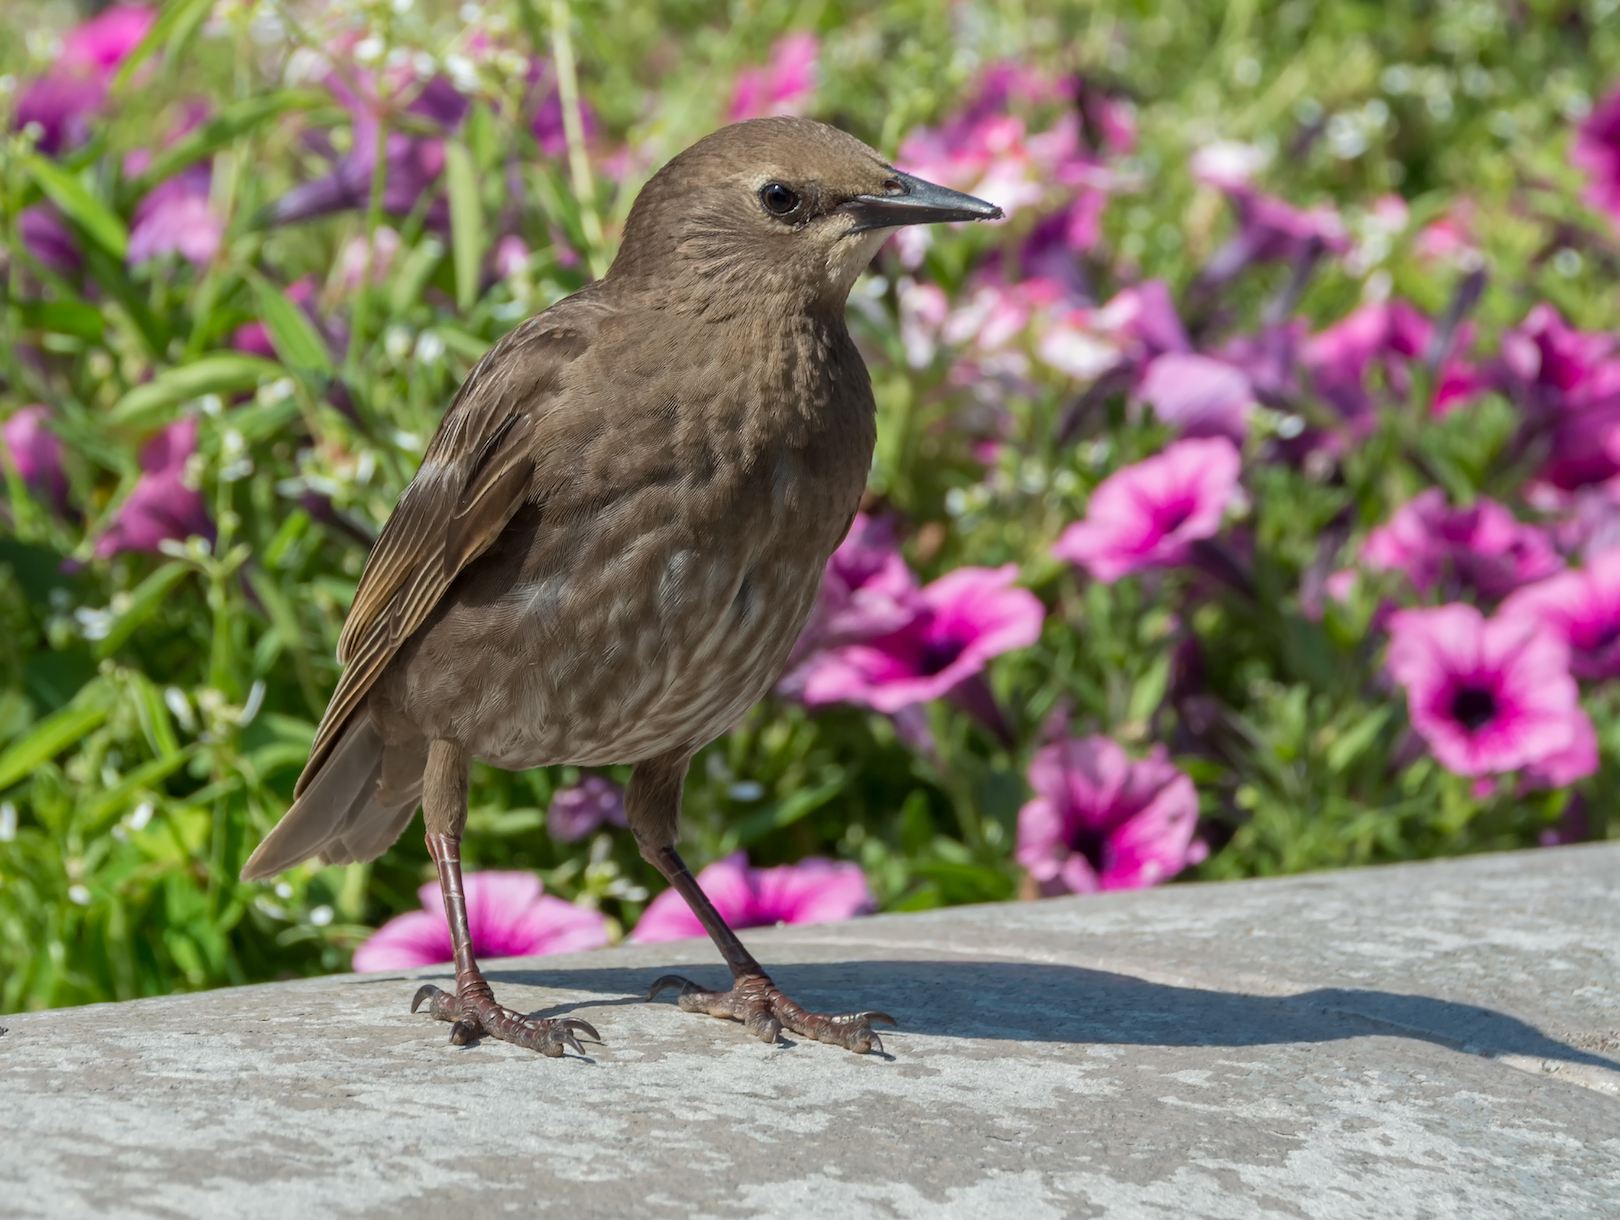 Antidepressants found in sewage treatment systems are affecting the mating habits of starlings in the UK, according to a new study.